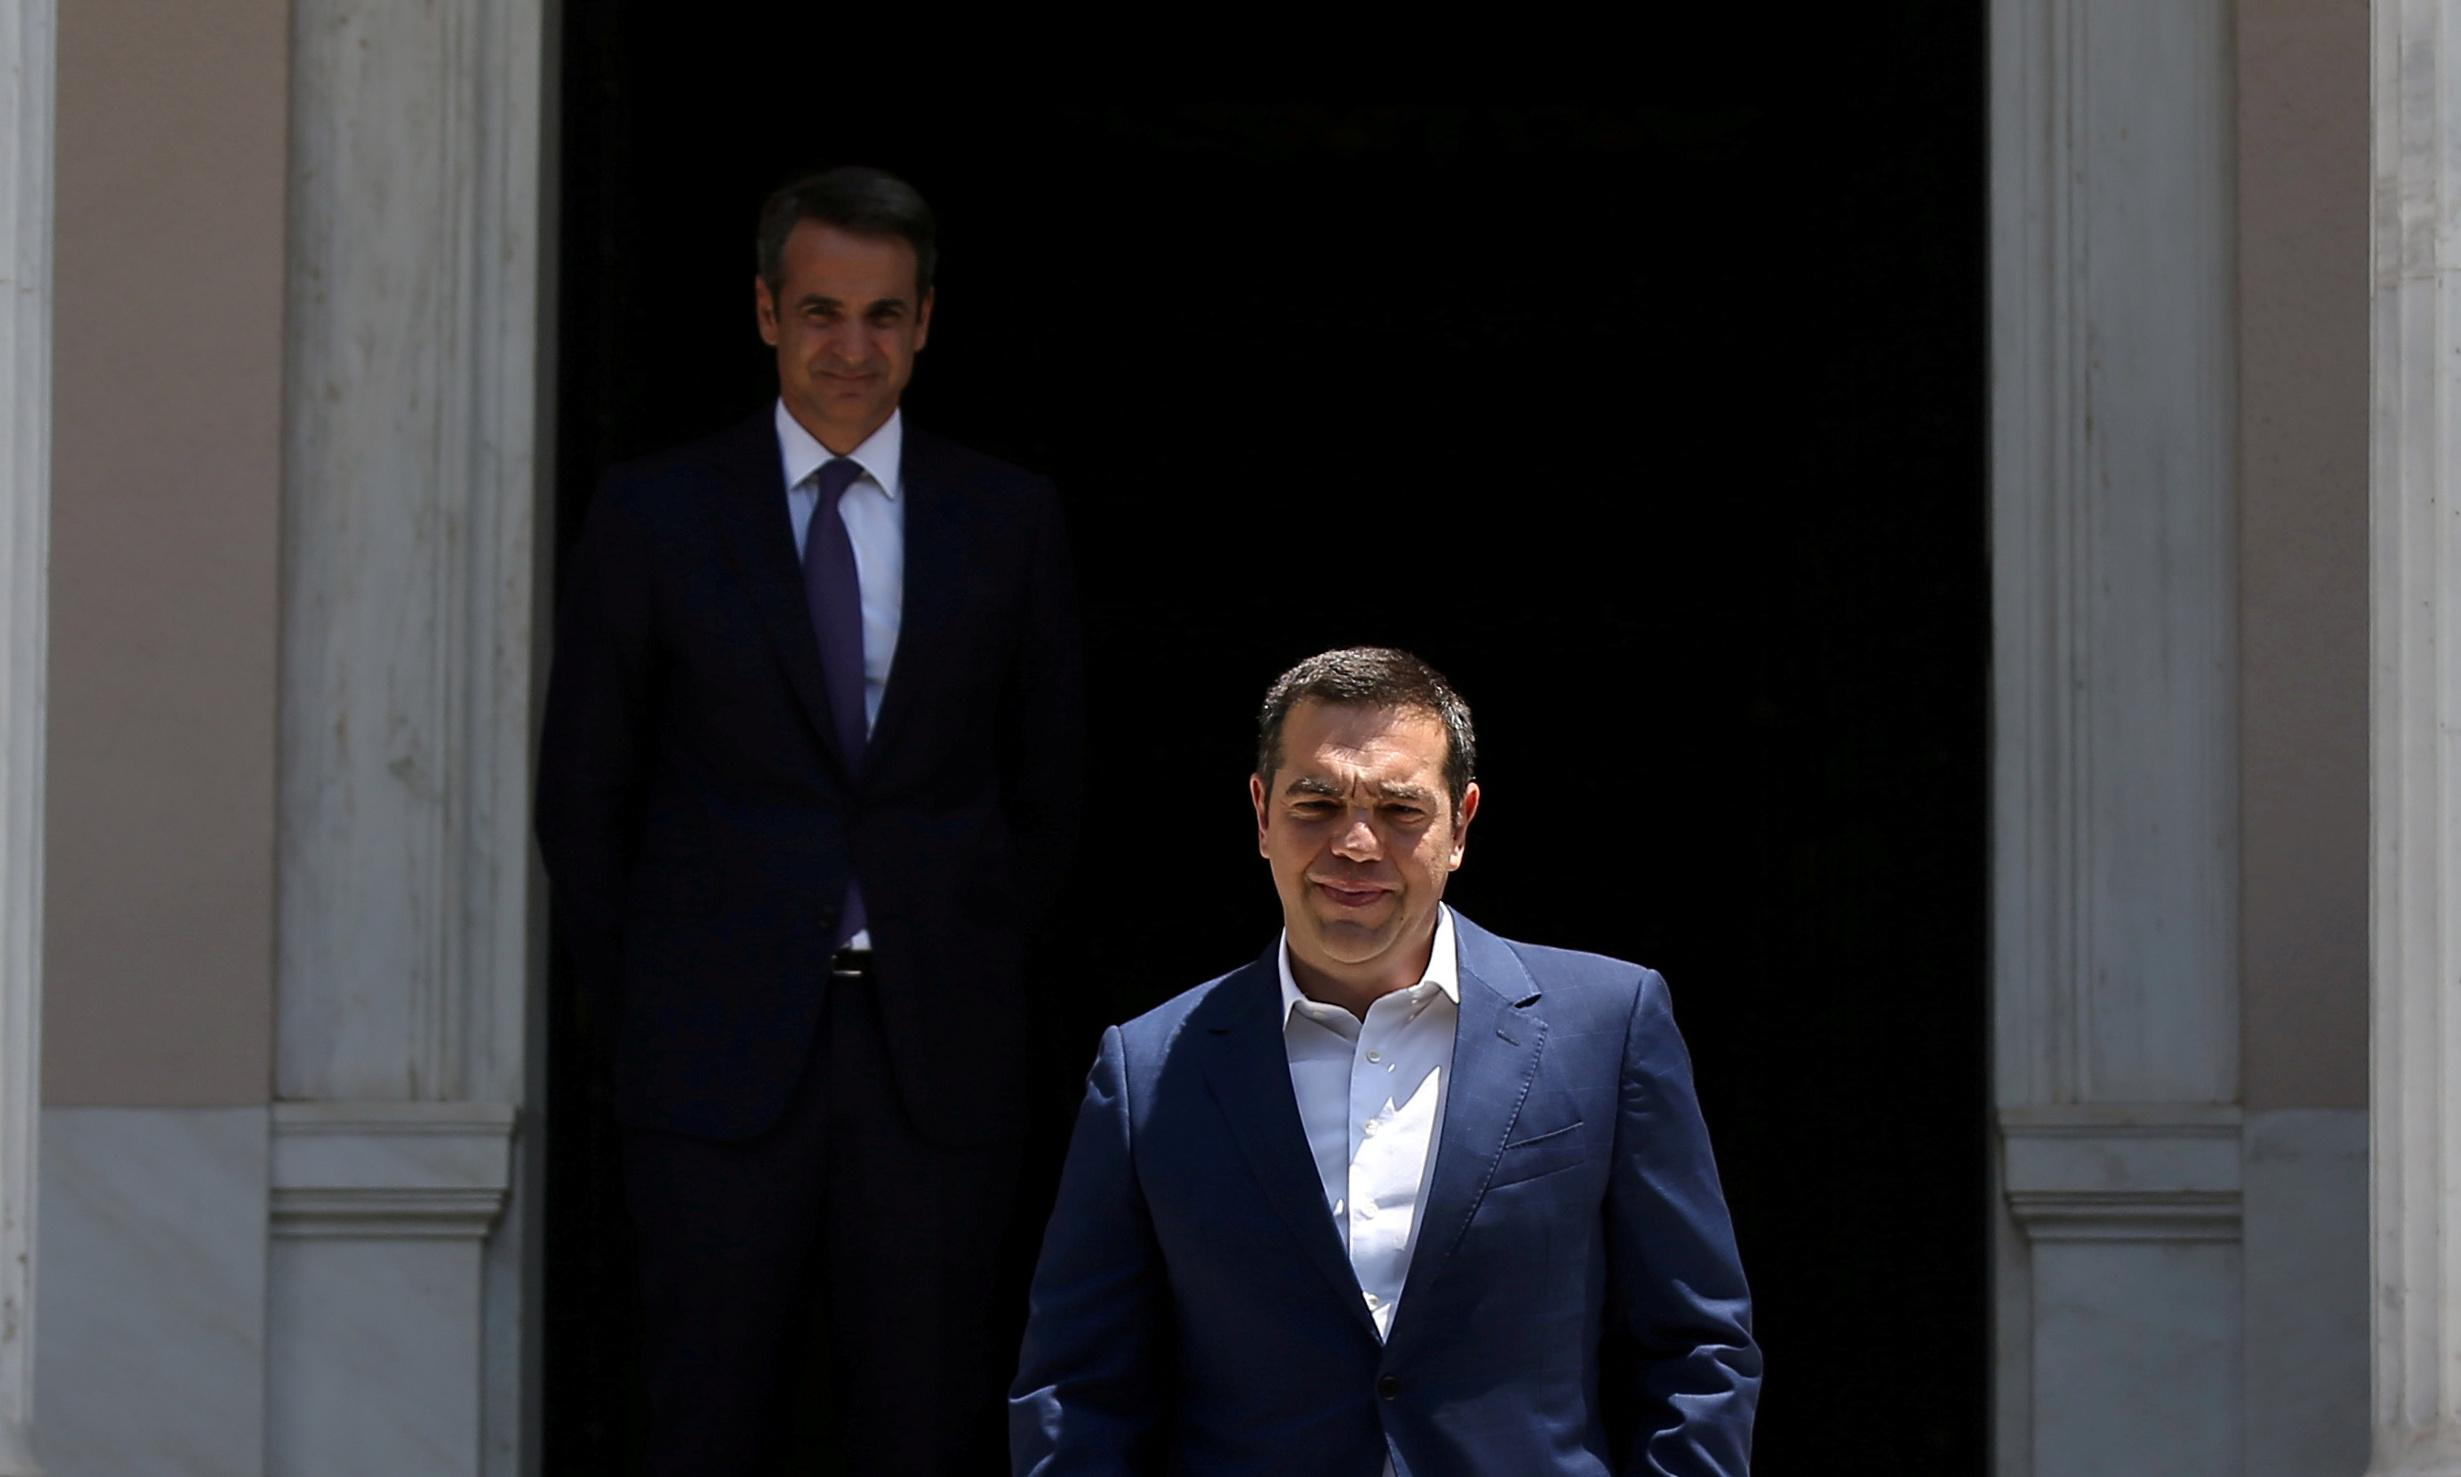 The three mistakes behind Syriza's demise in Greece